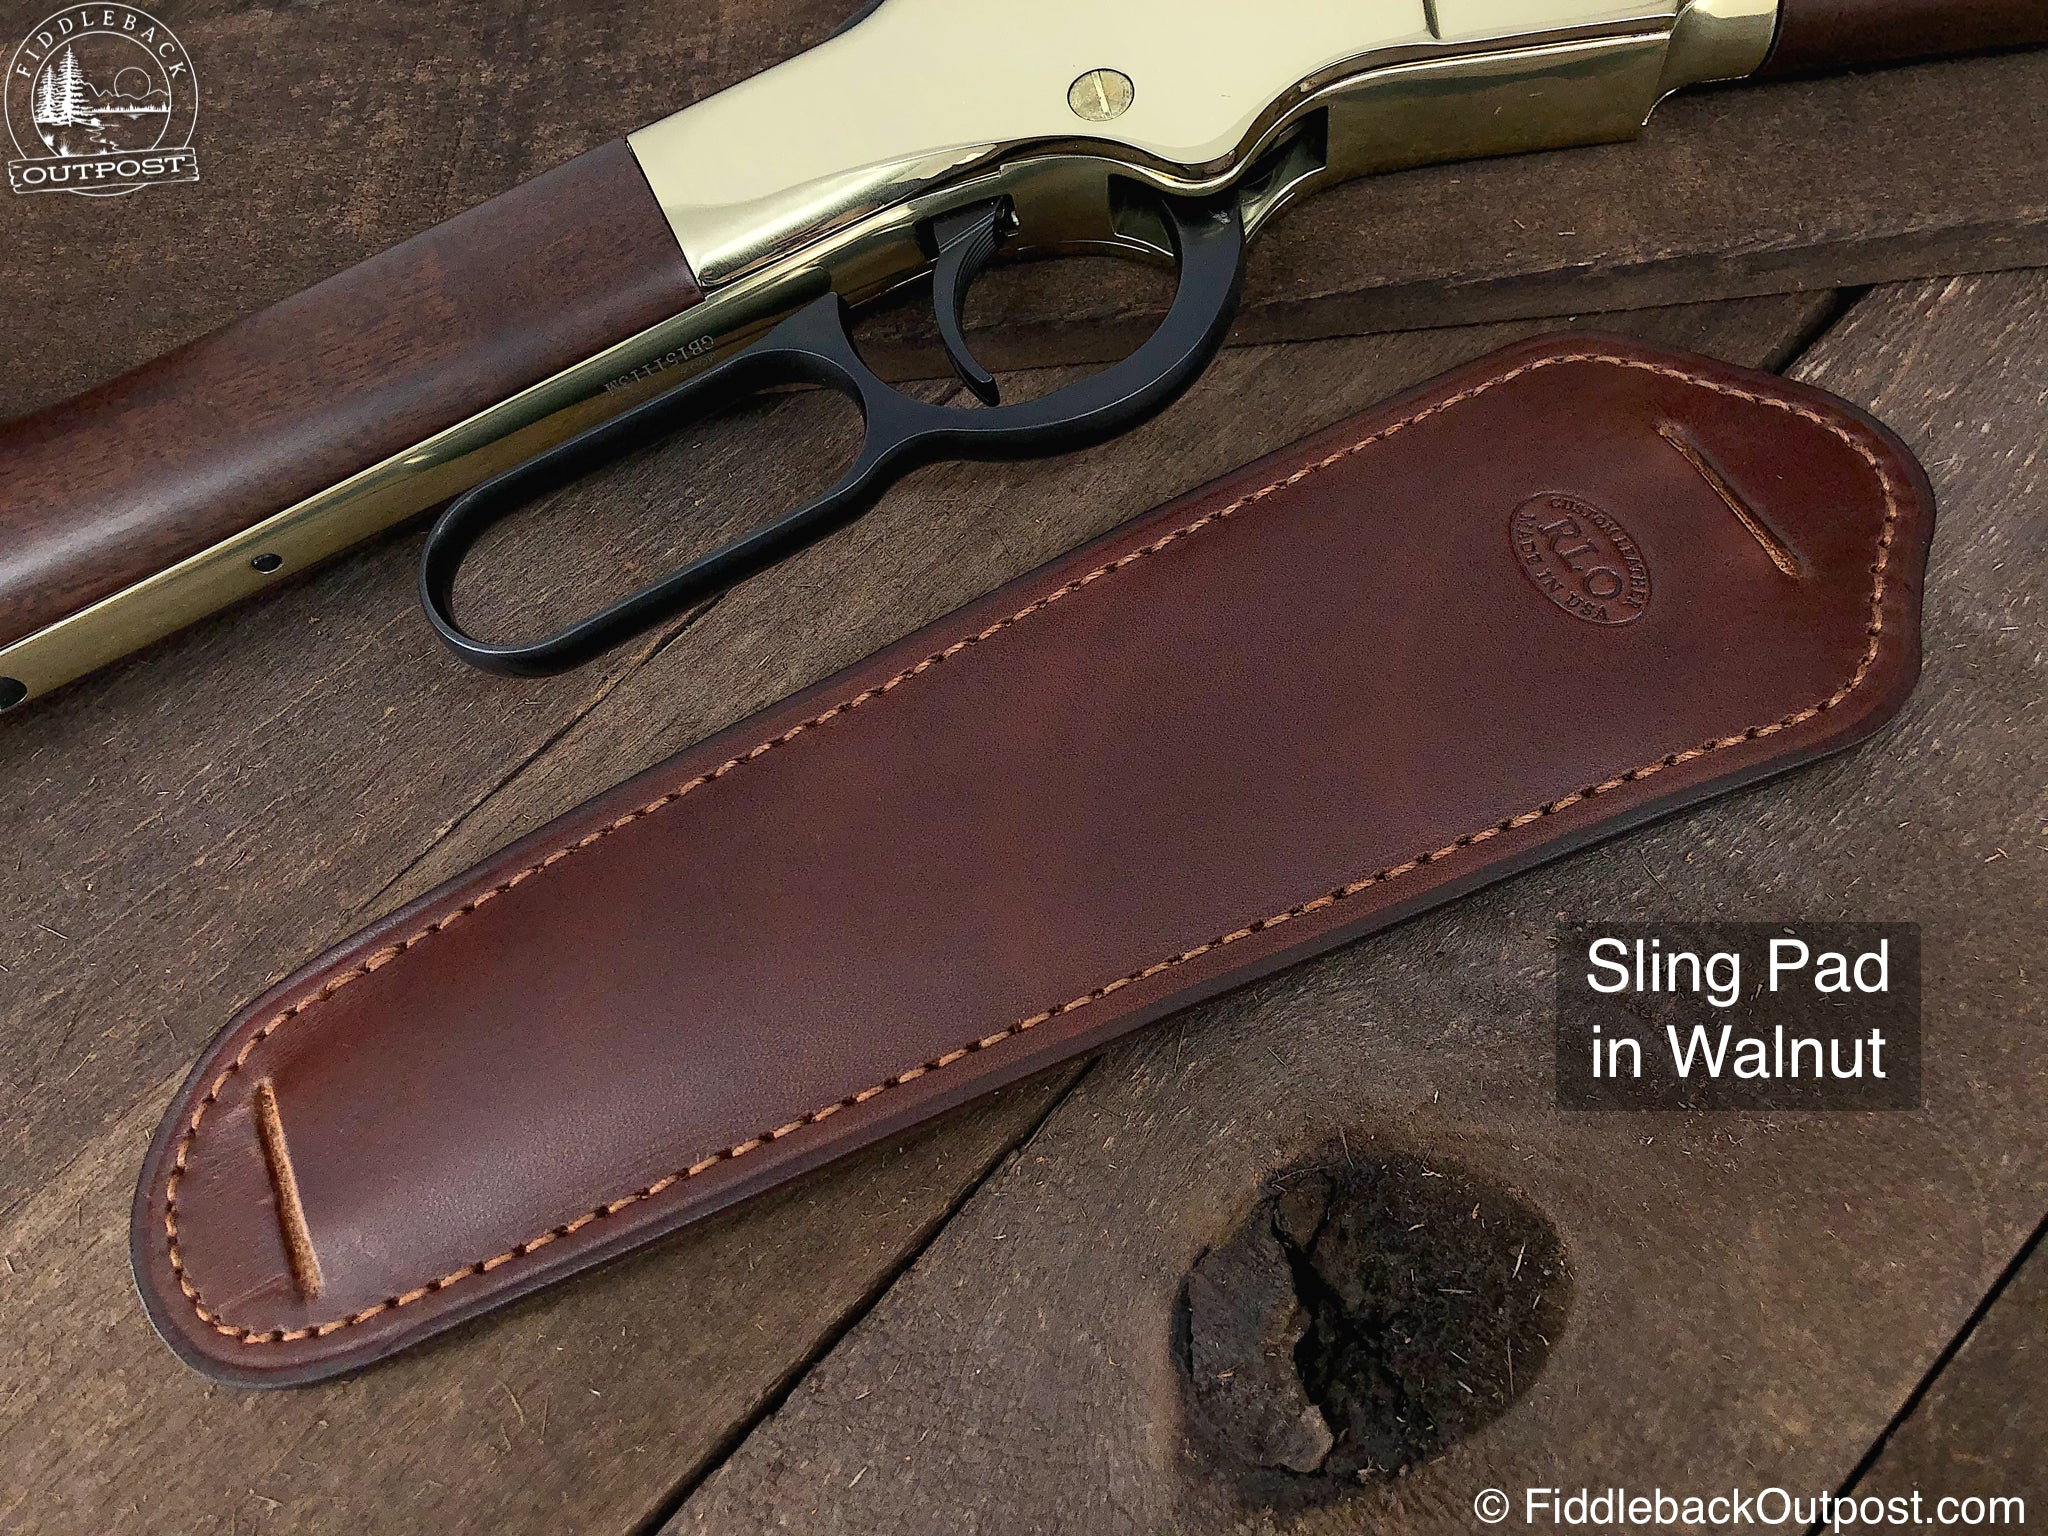 Handmade Leather Rifle Sling/_Adjustable gun sling/_30 to 36/_Made in USA/_FREE SHIPPING